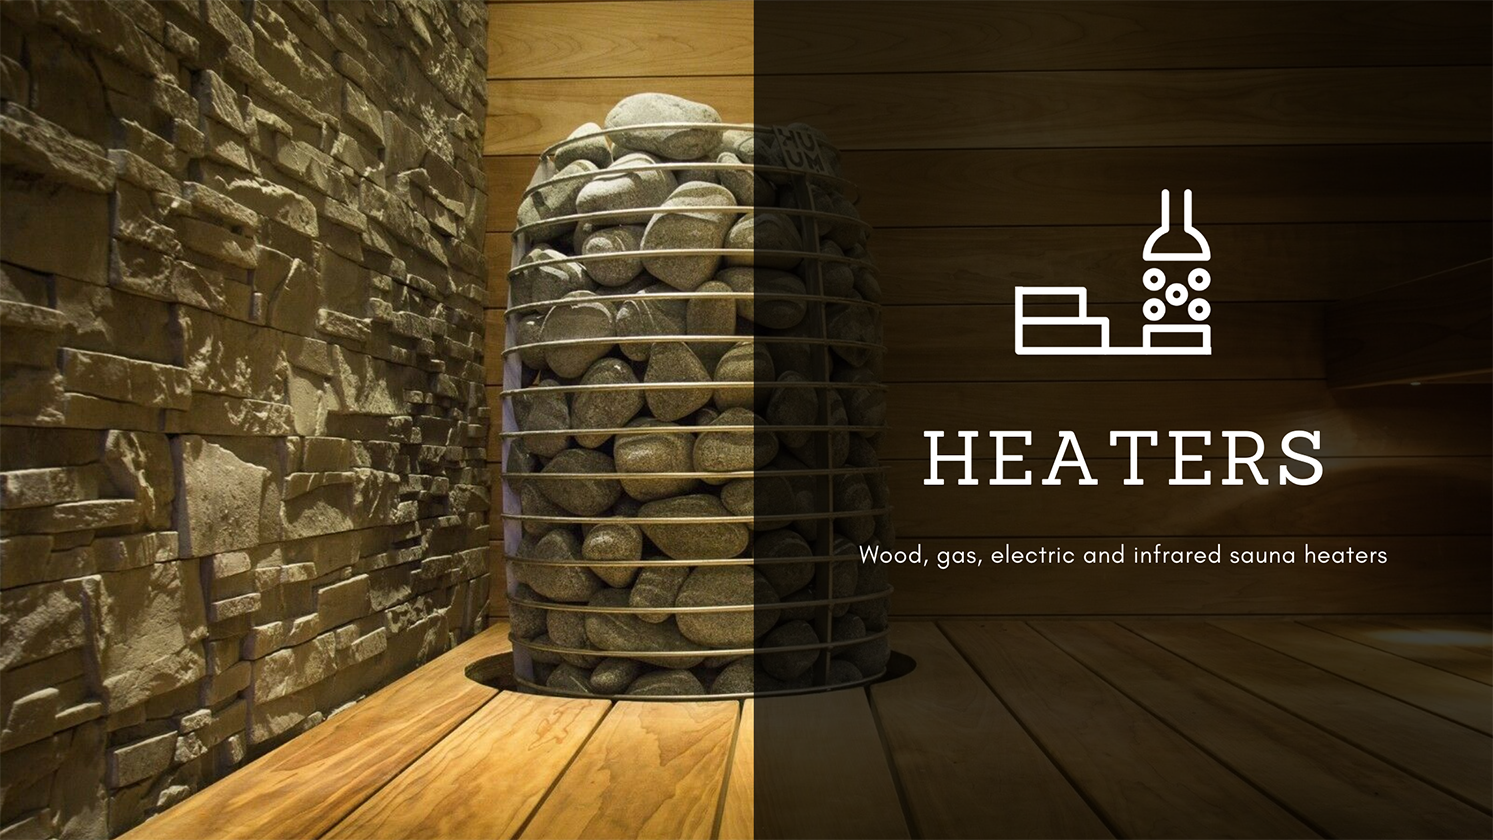 Wood, gas, electric and infrared sauna heaters